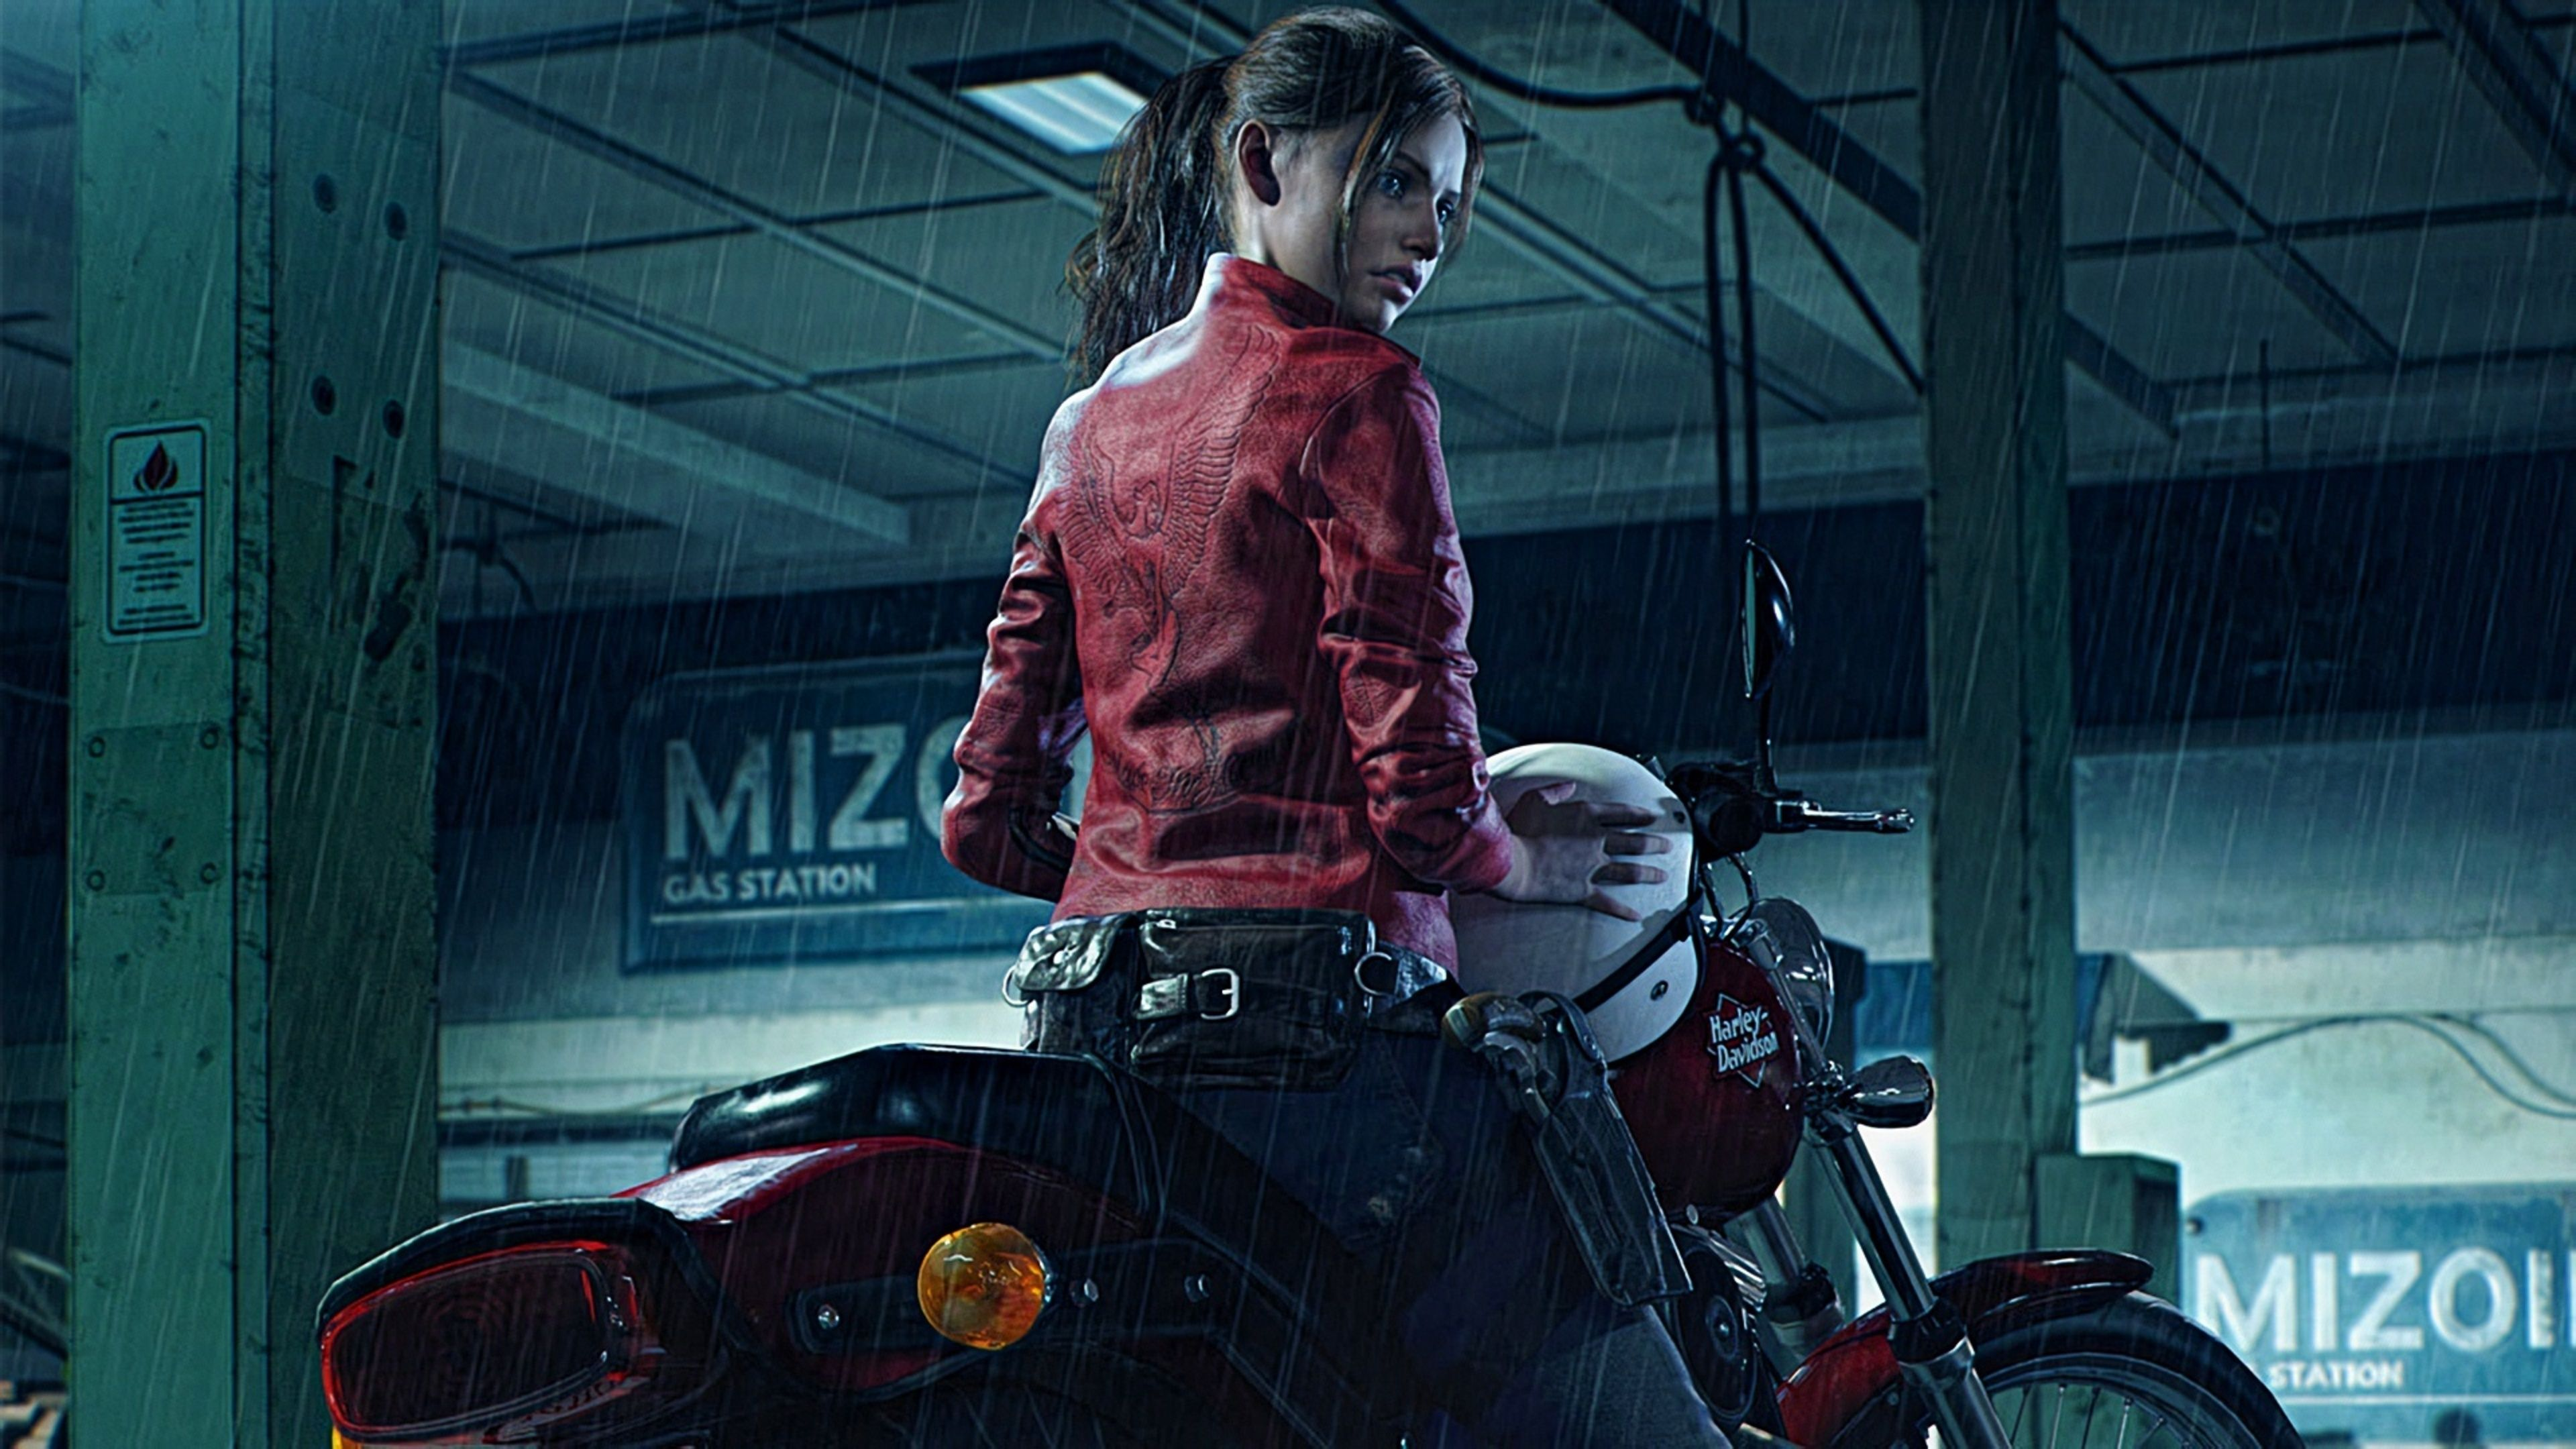 Resident Evil 2 2019 Claire Redfield Harley Davidson Resident Evil 2 Wallpapers Hd Wallpapers Games Wallp Resident Evil Resident Evil Girl Resident Evil Game